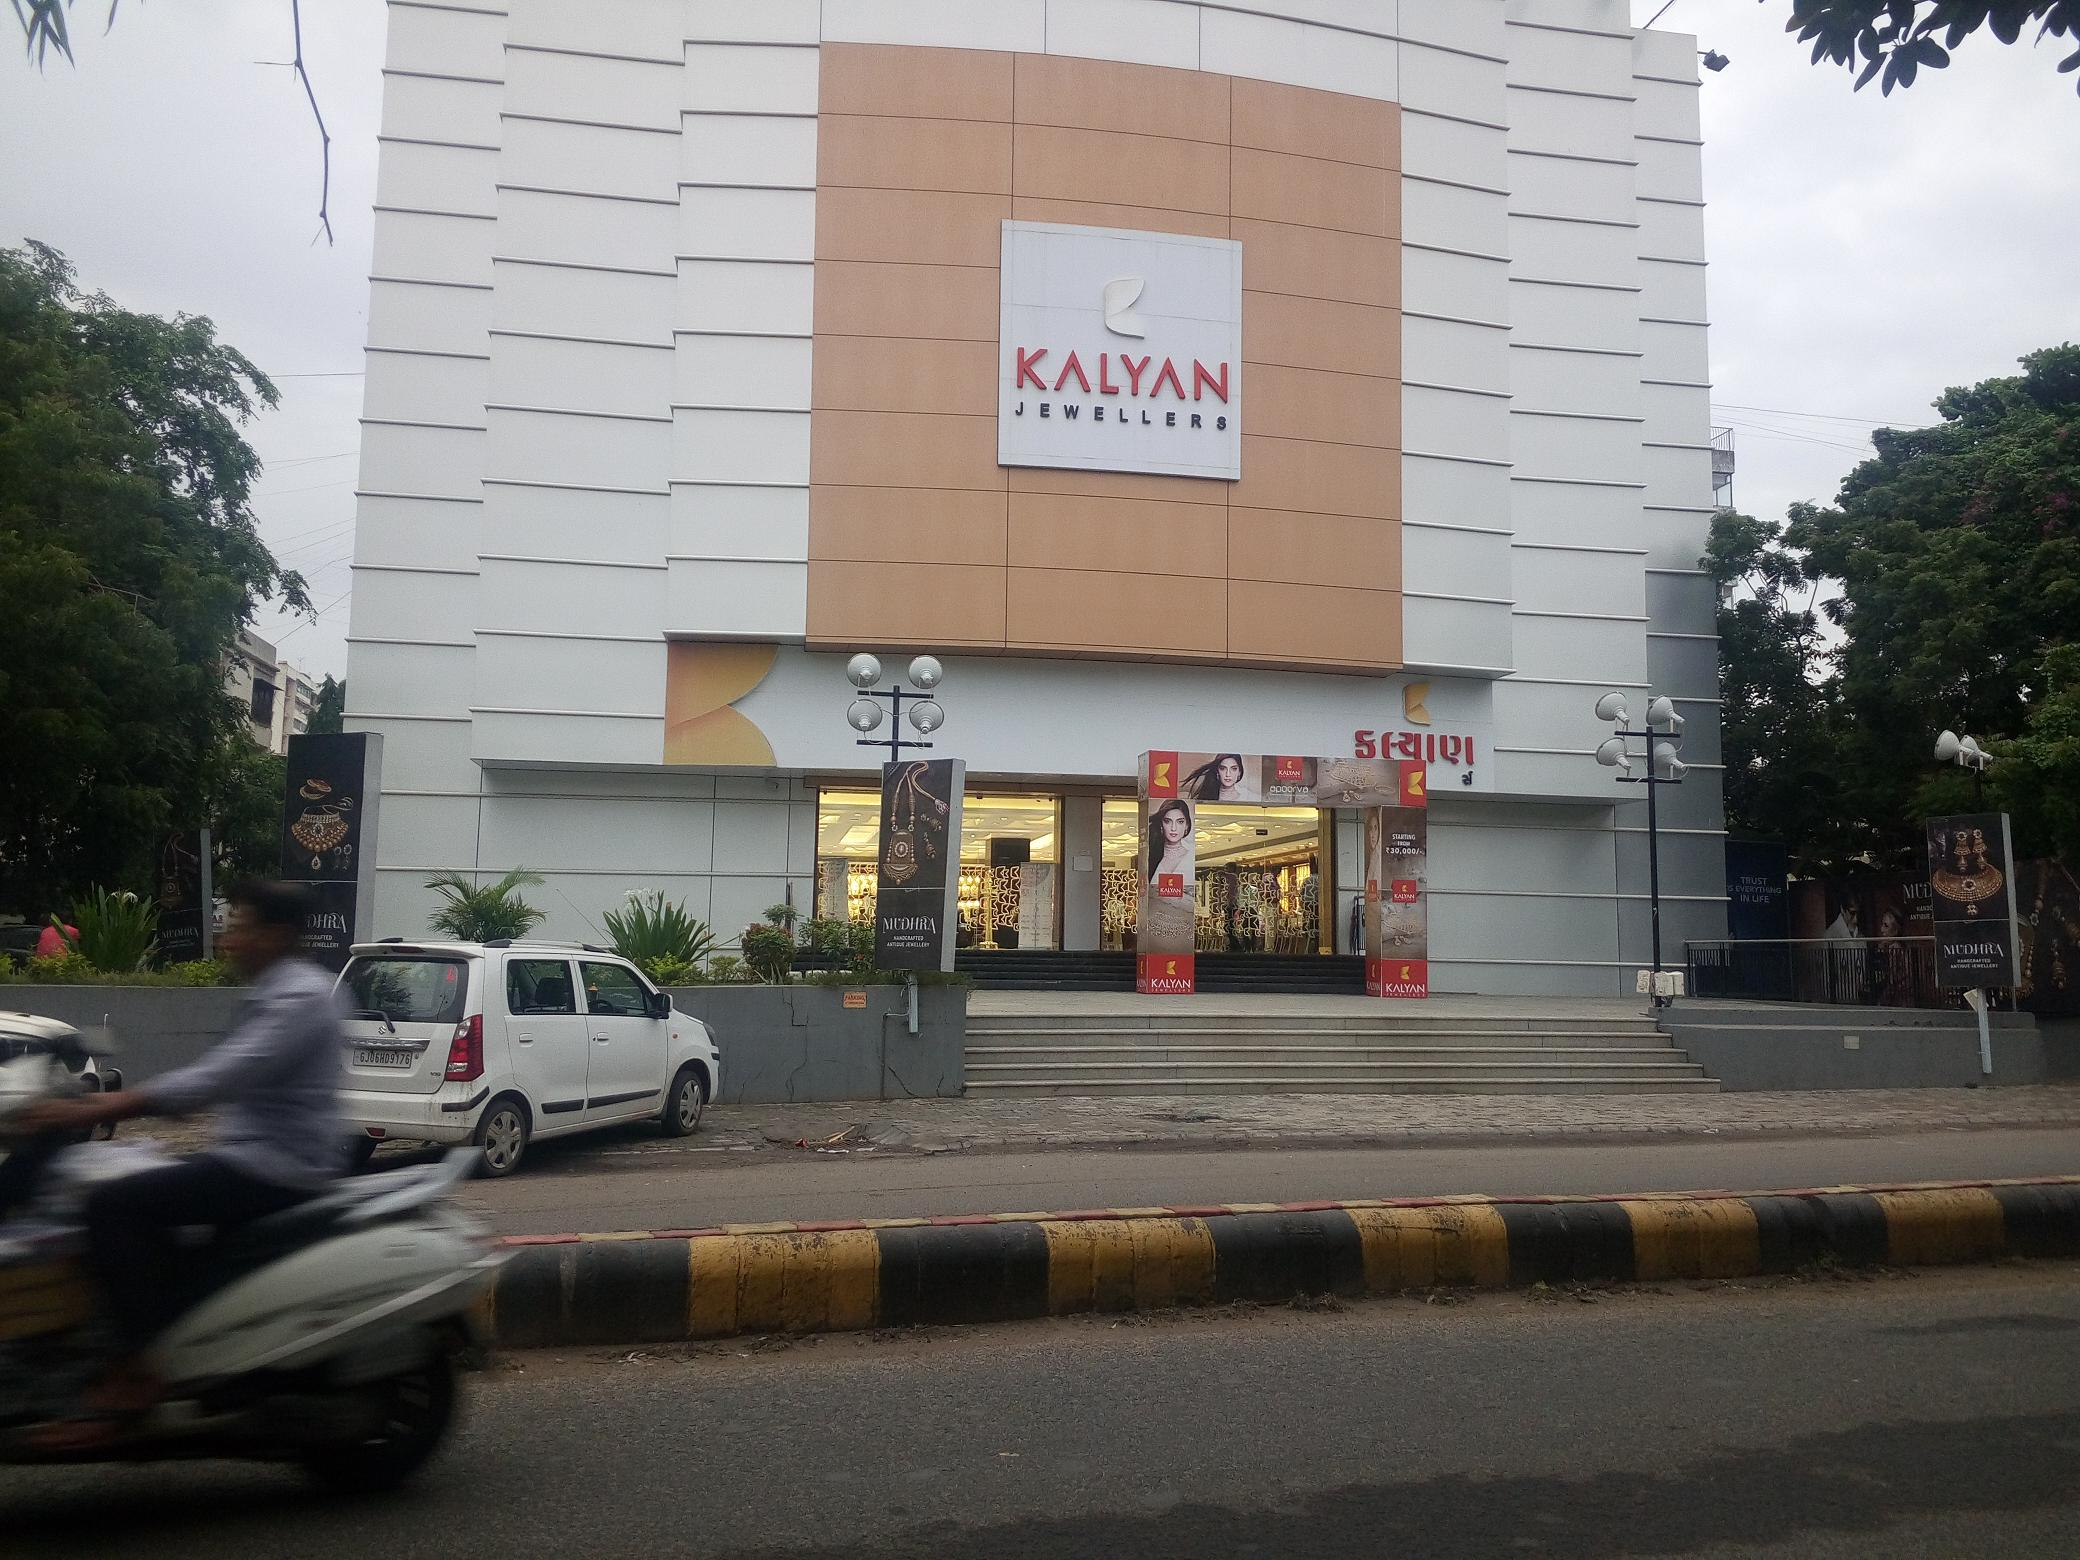 Kalyan Jewellers Vadodara having more than 6 steps They are having enough space for Divyang Ramp but they have not make provision for CSR